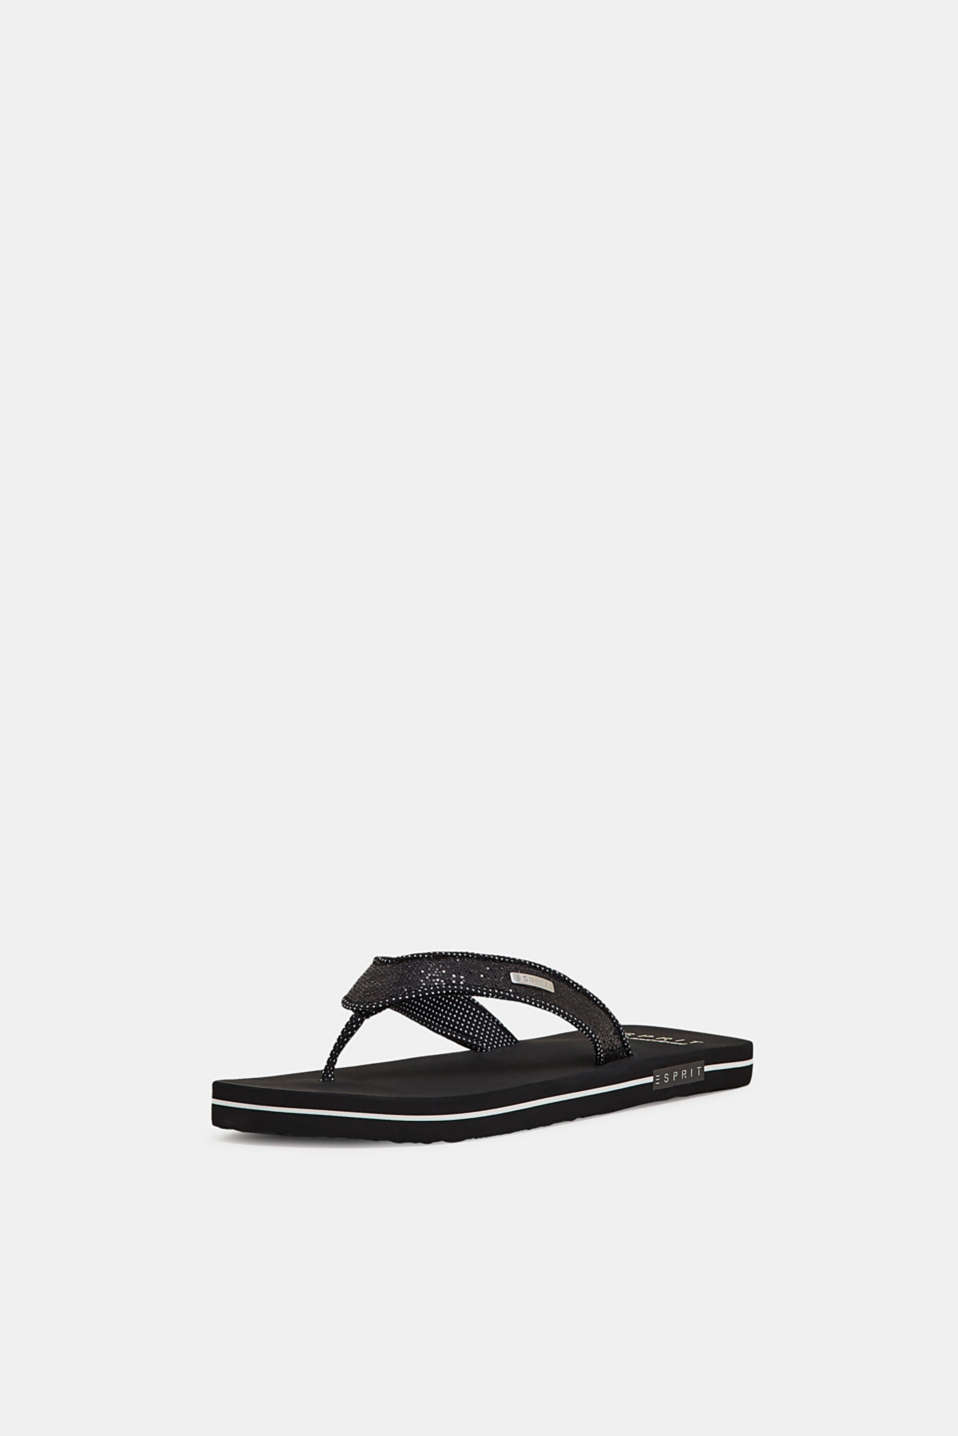 Slip slops with glittery straps, BLACK, detail image number 2